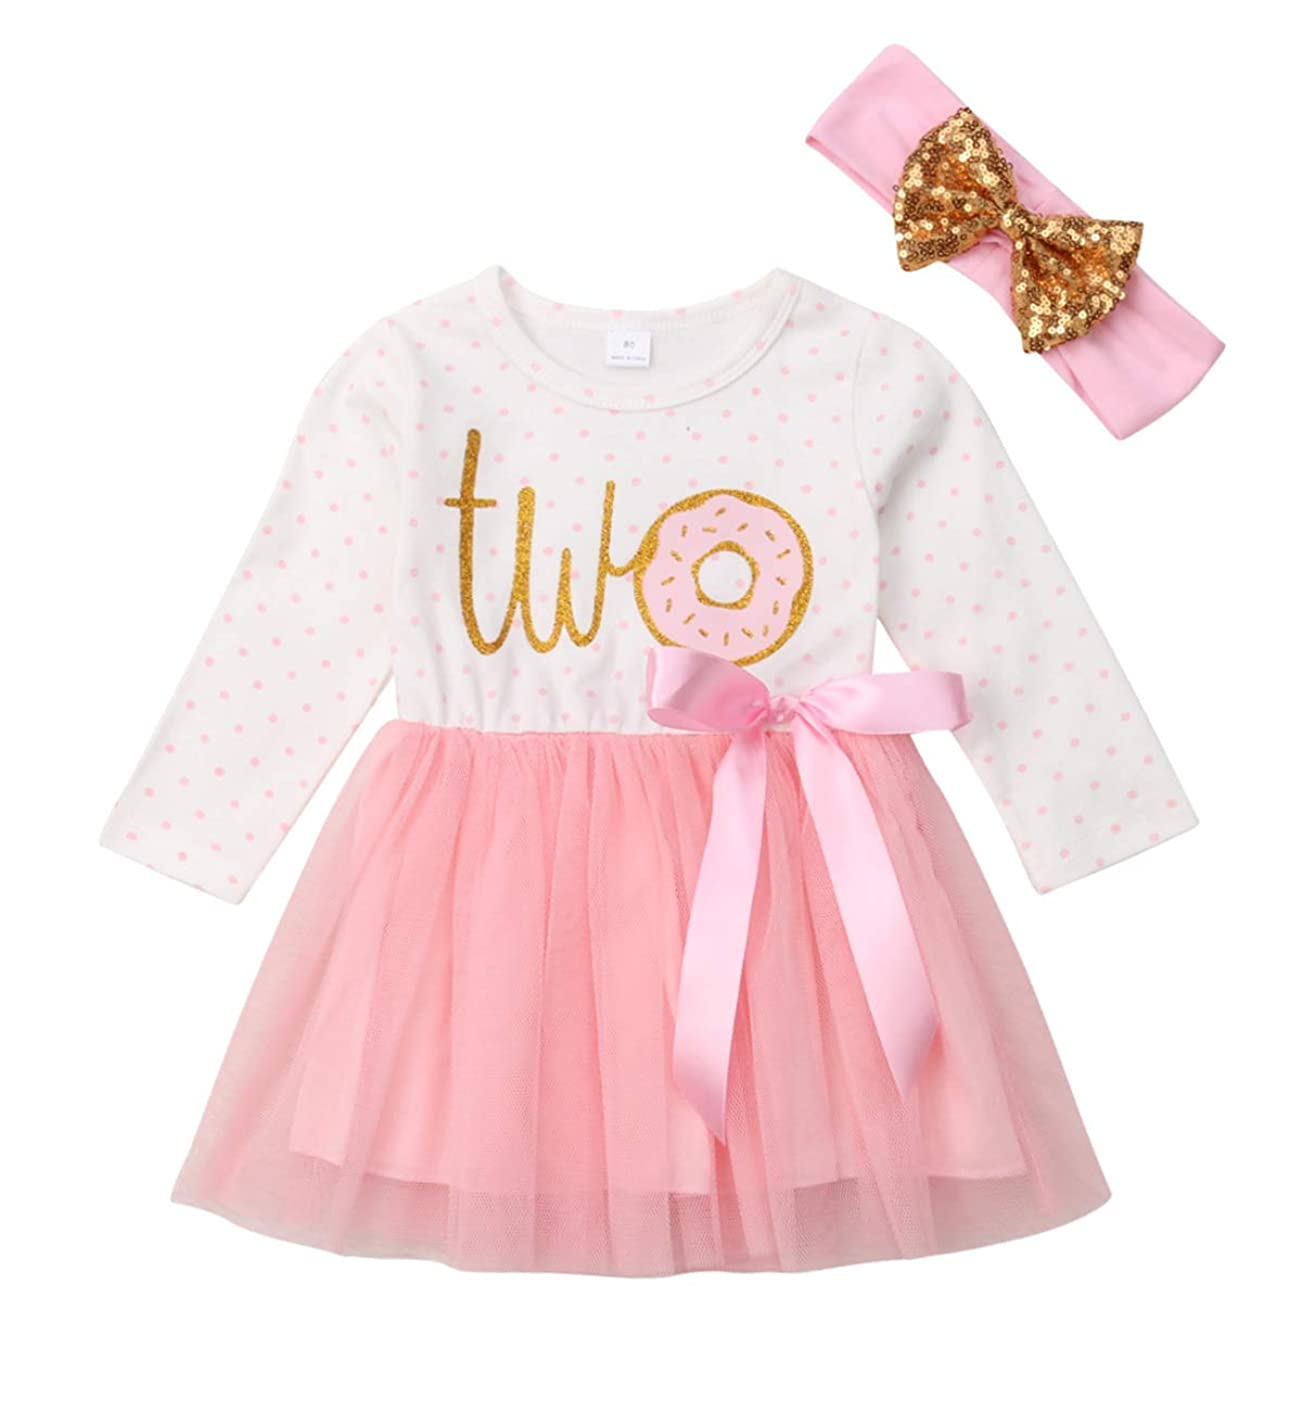 Baby Girl 2nd Birthday Outfit Tutu Dress Floral Long Sleeve Lace Skirt + Headband Clothes